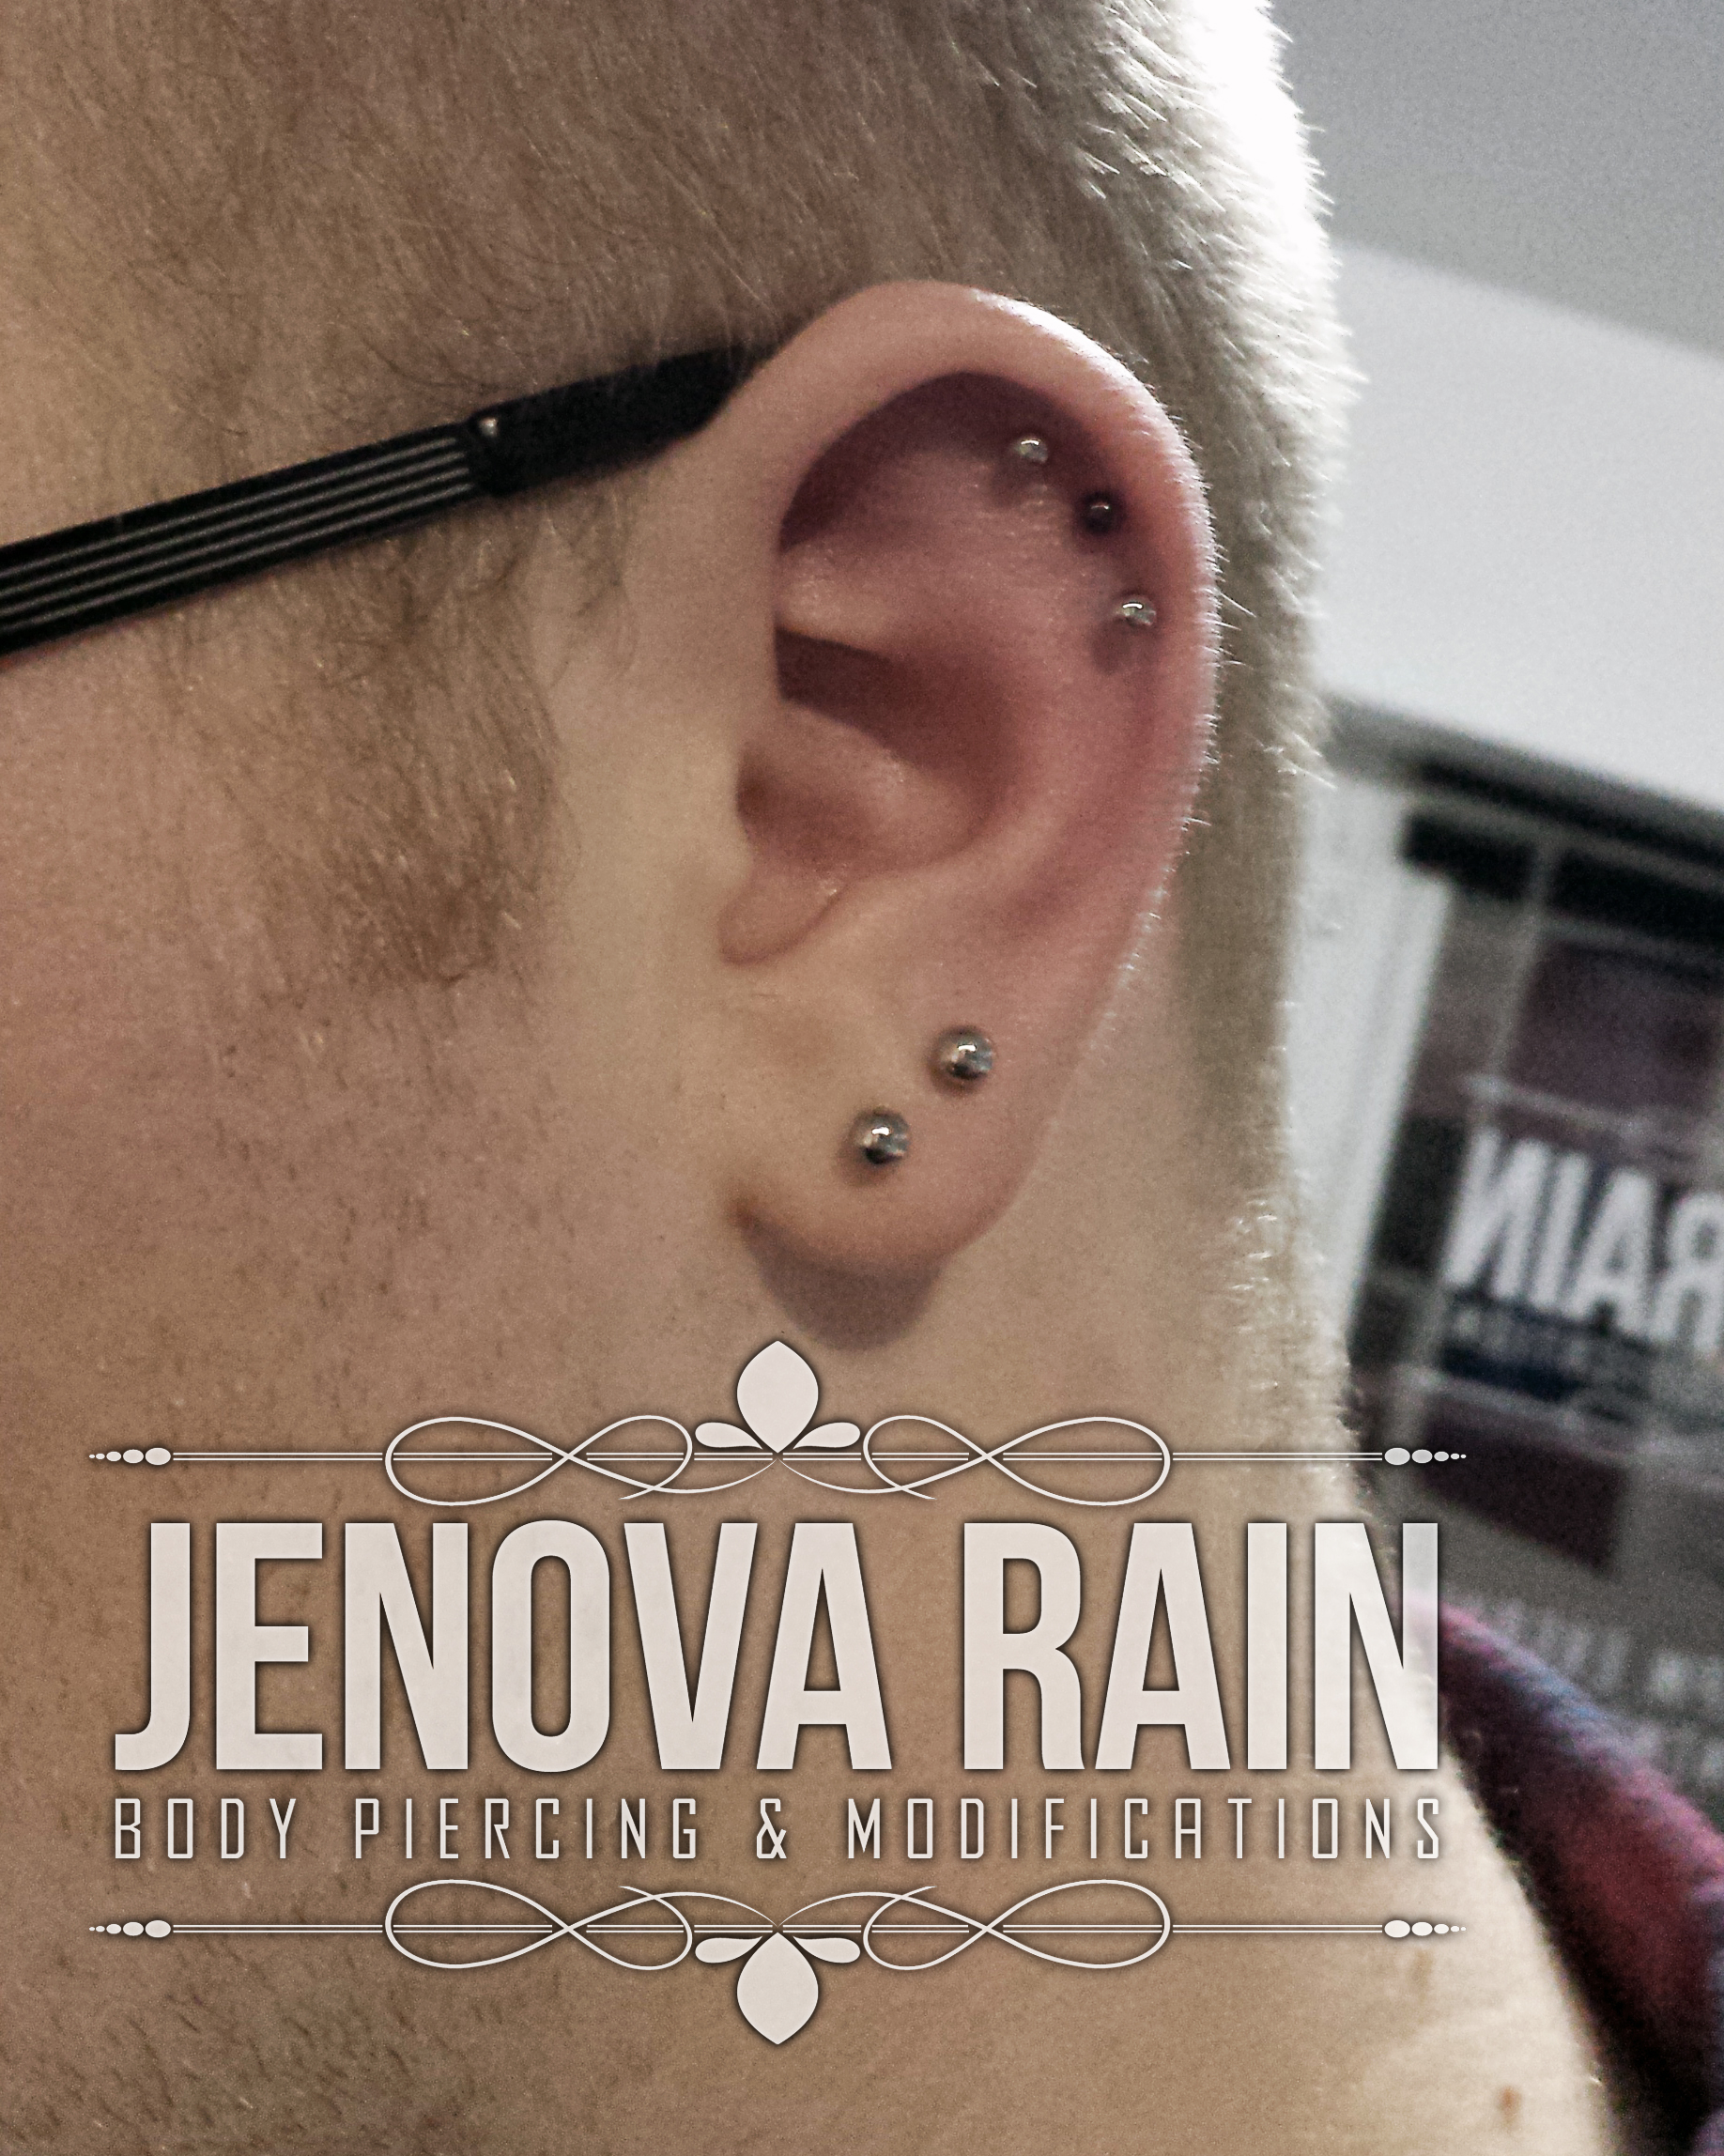 Ear helix conch body piercing